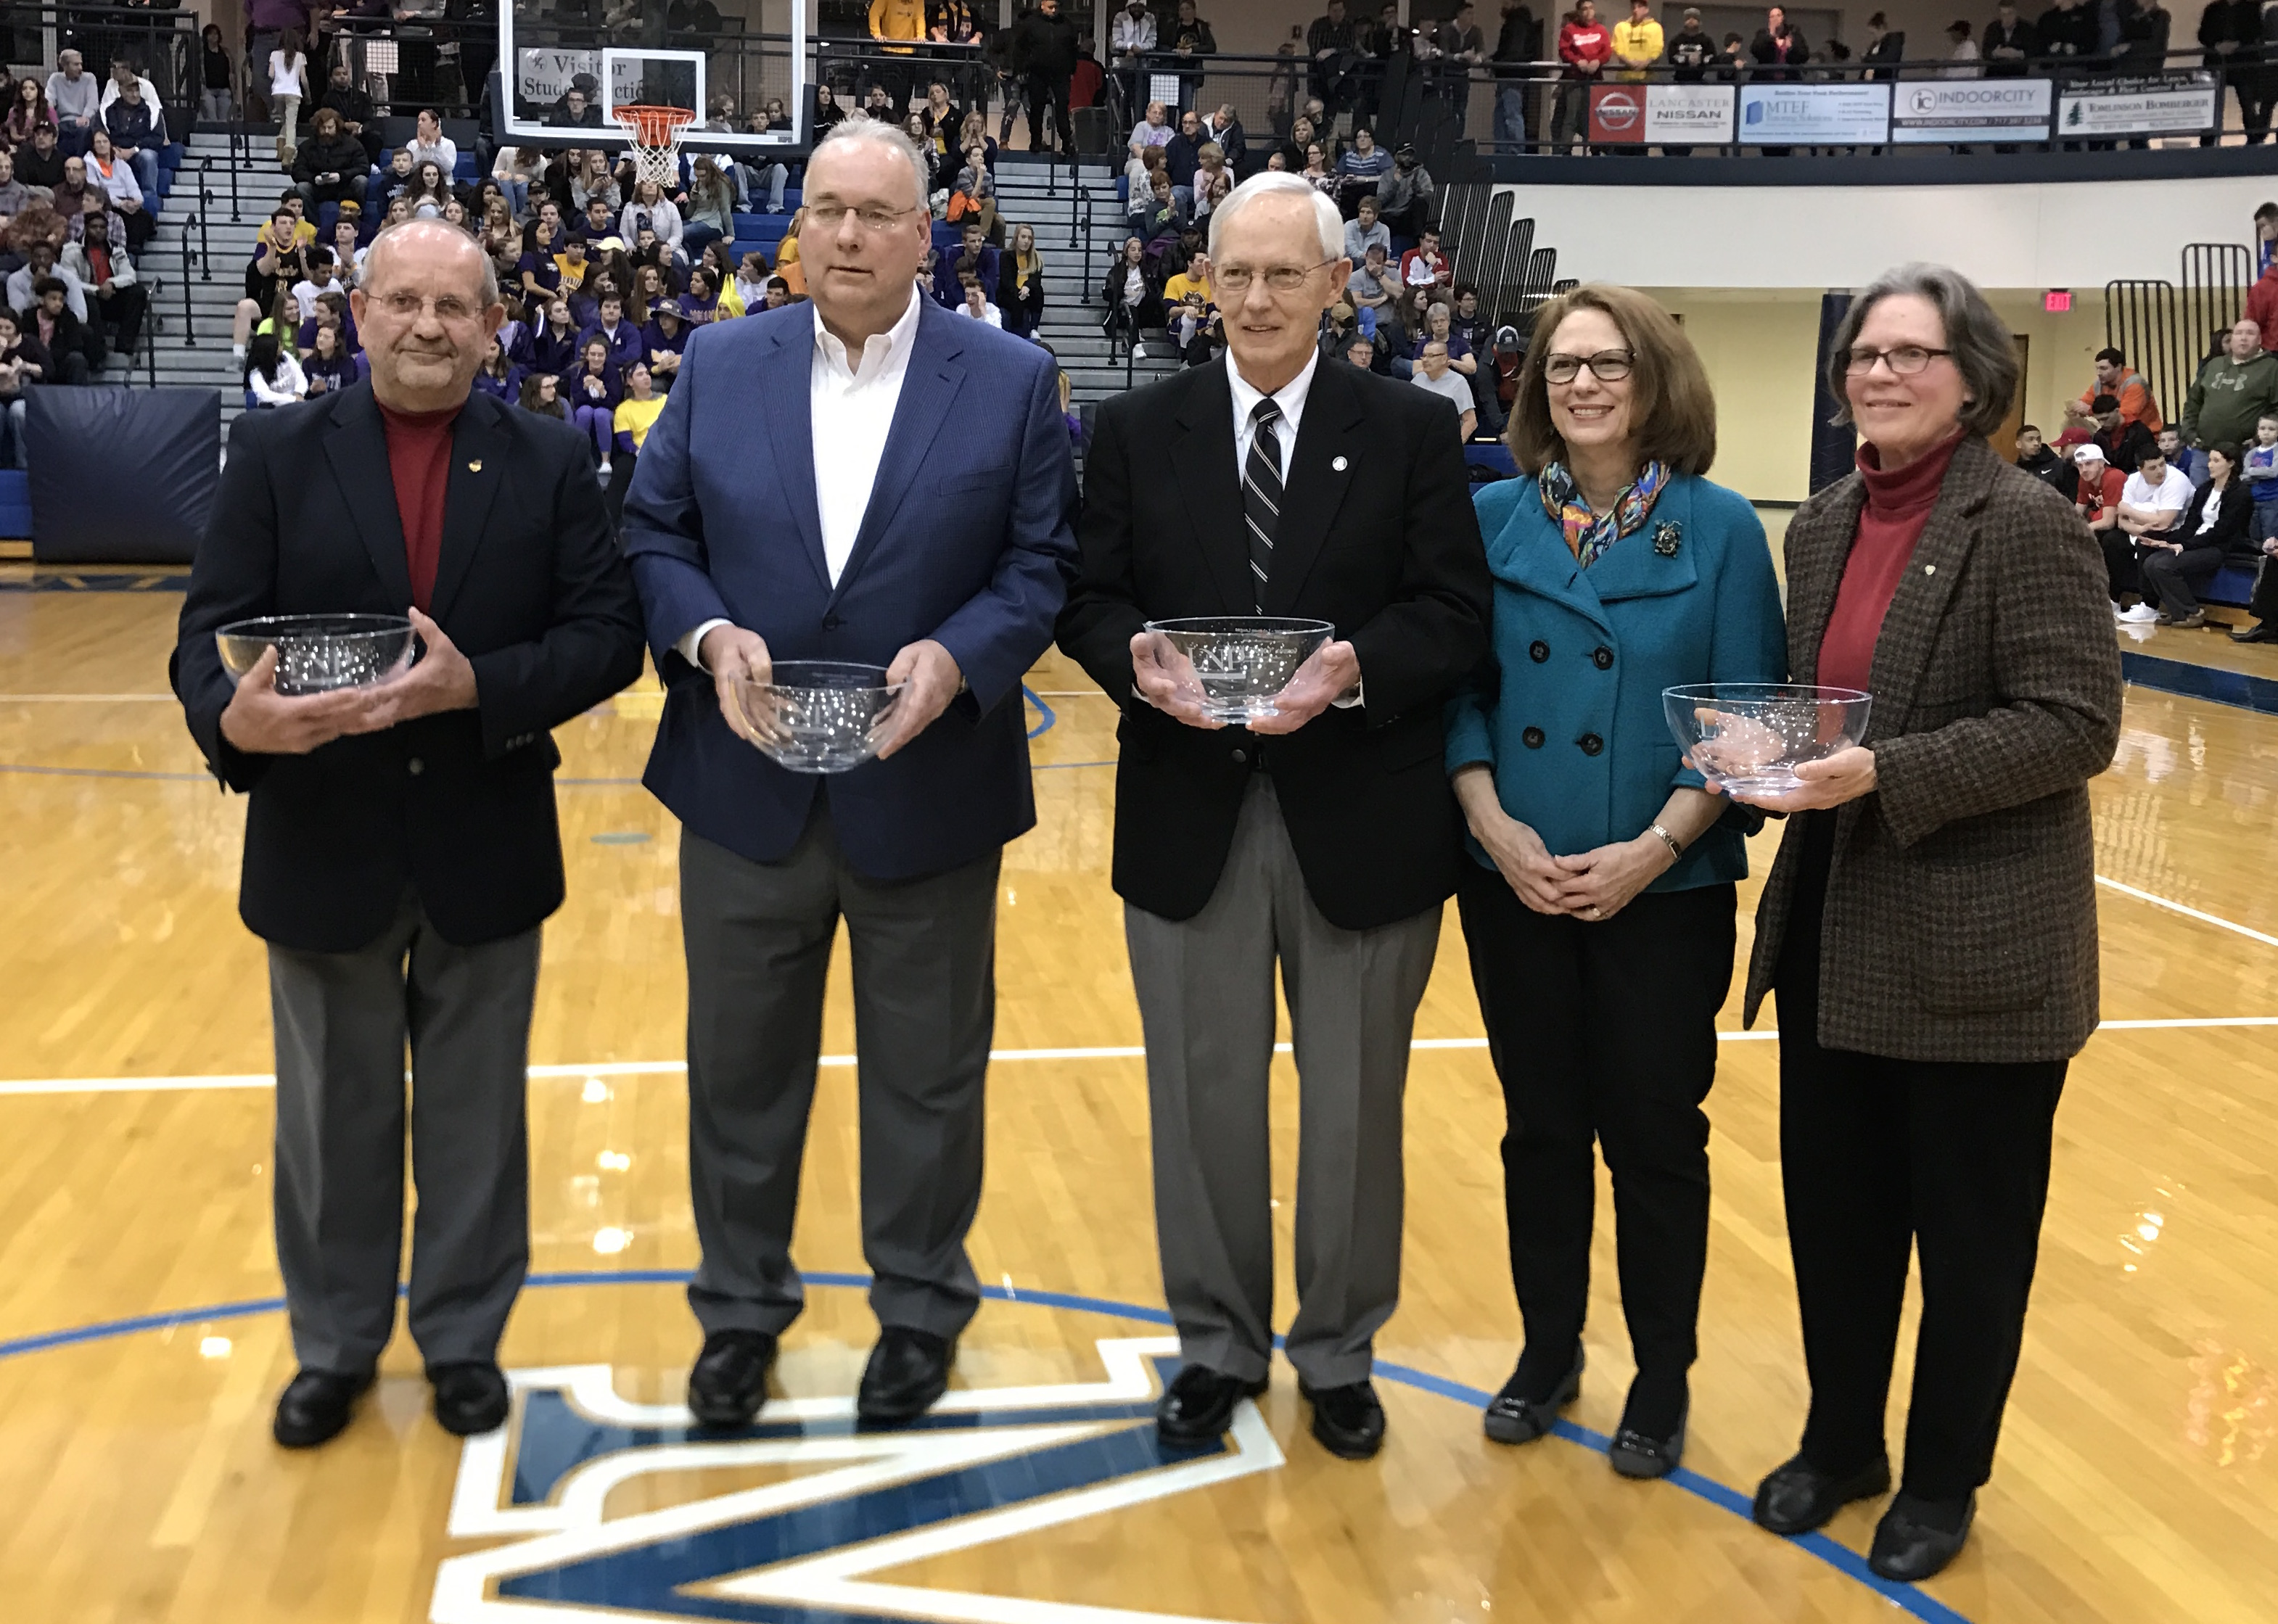 2017 Hall of Fame Induction